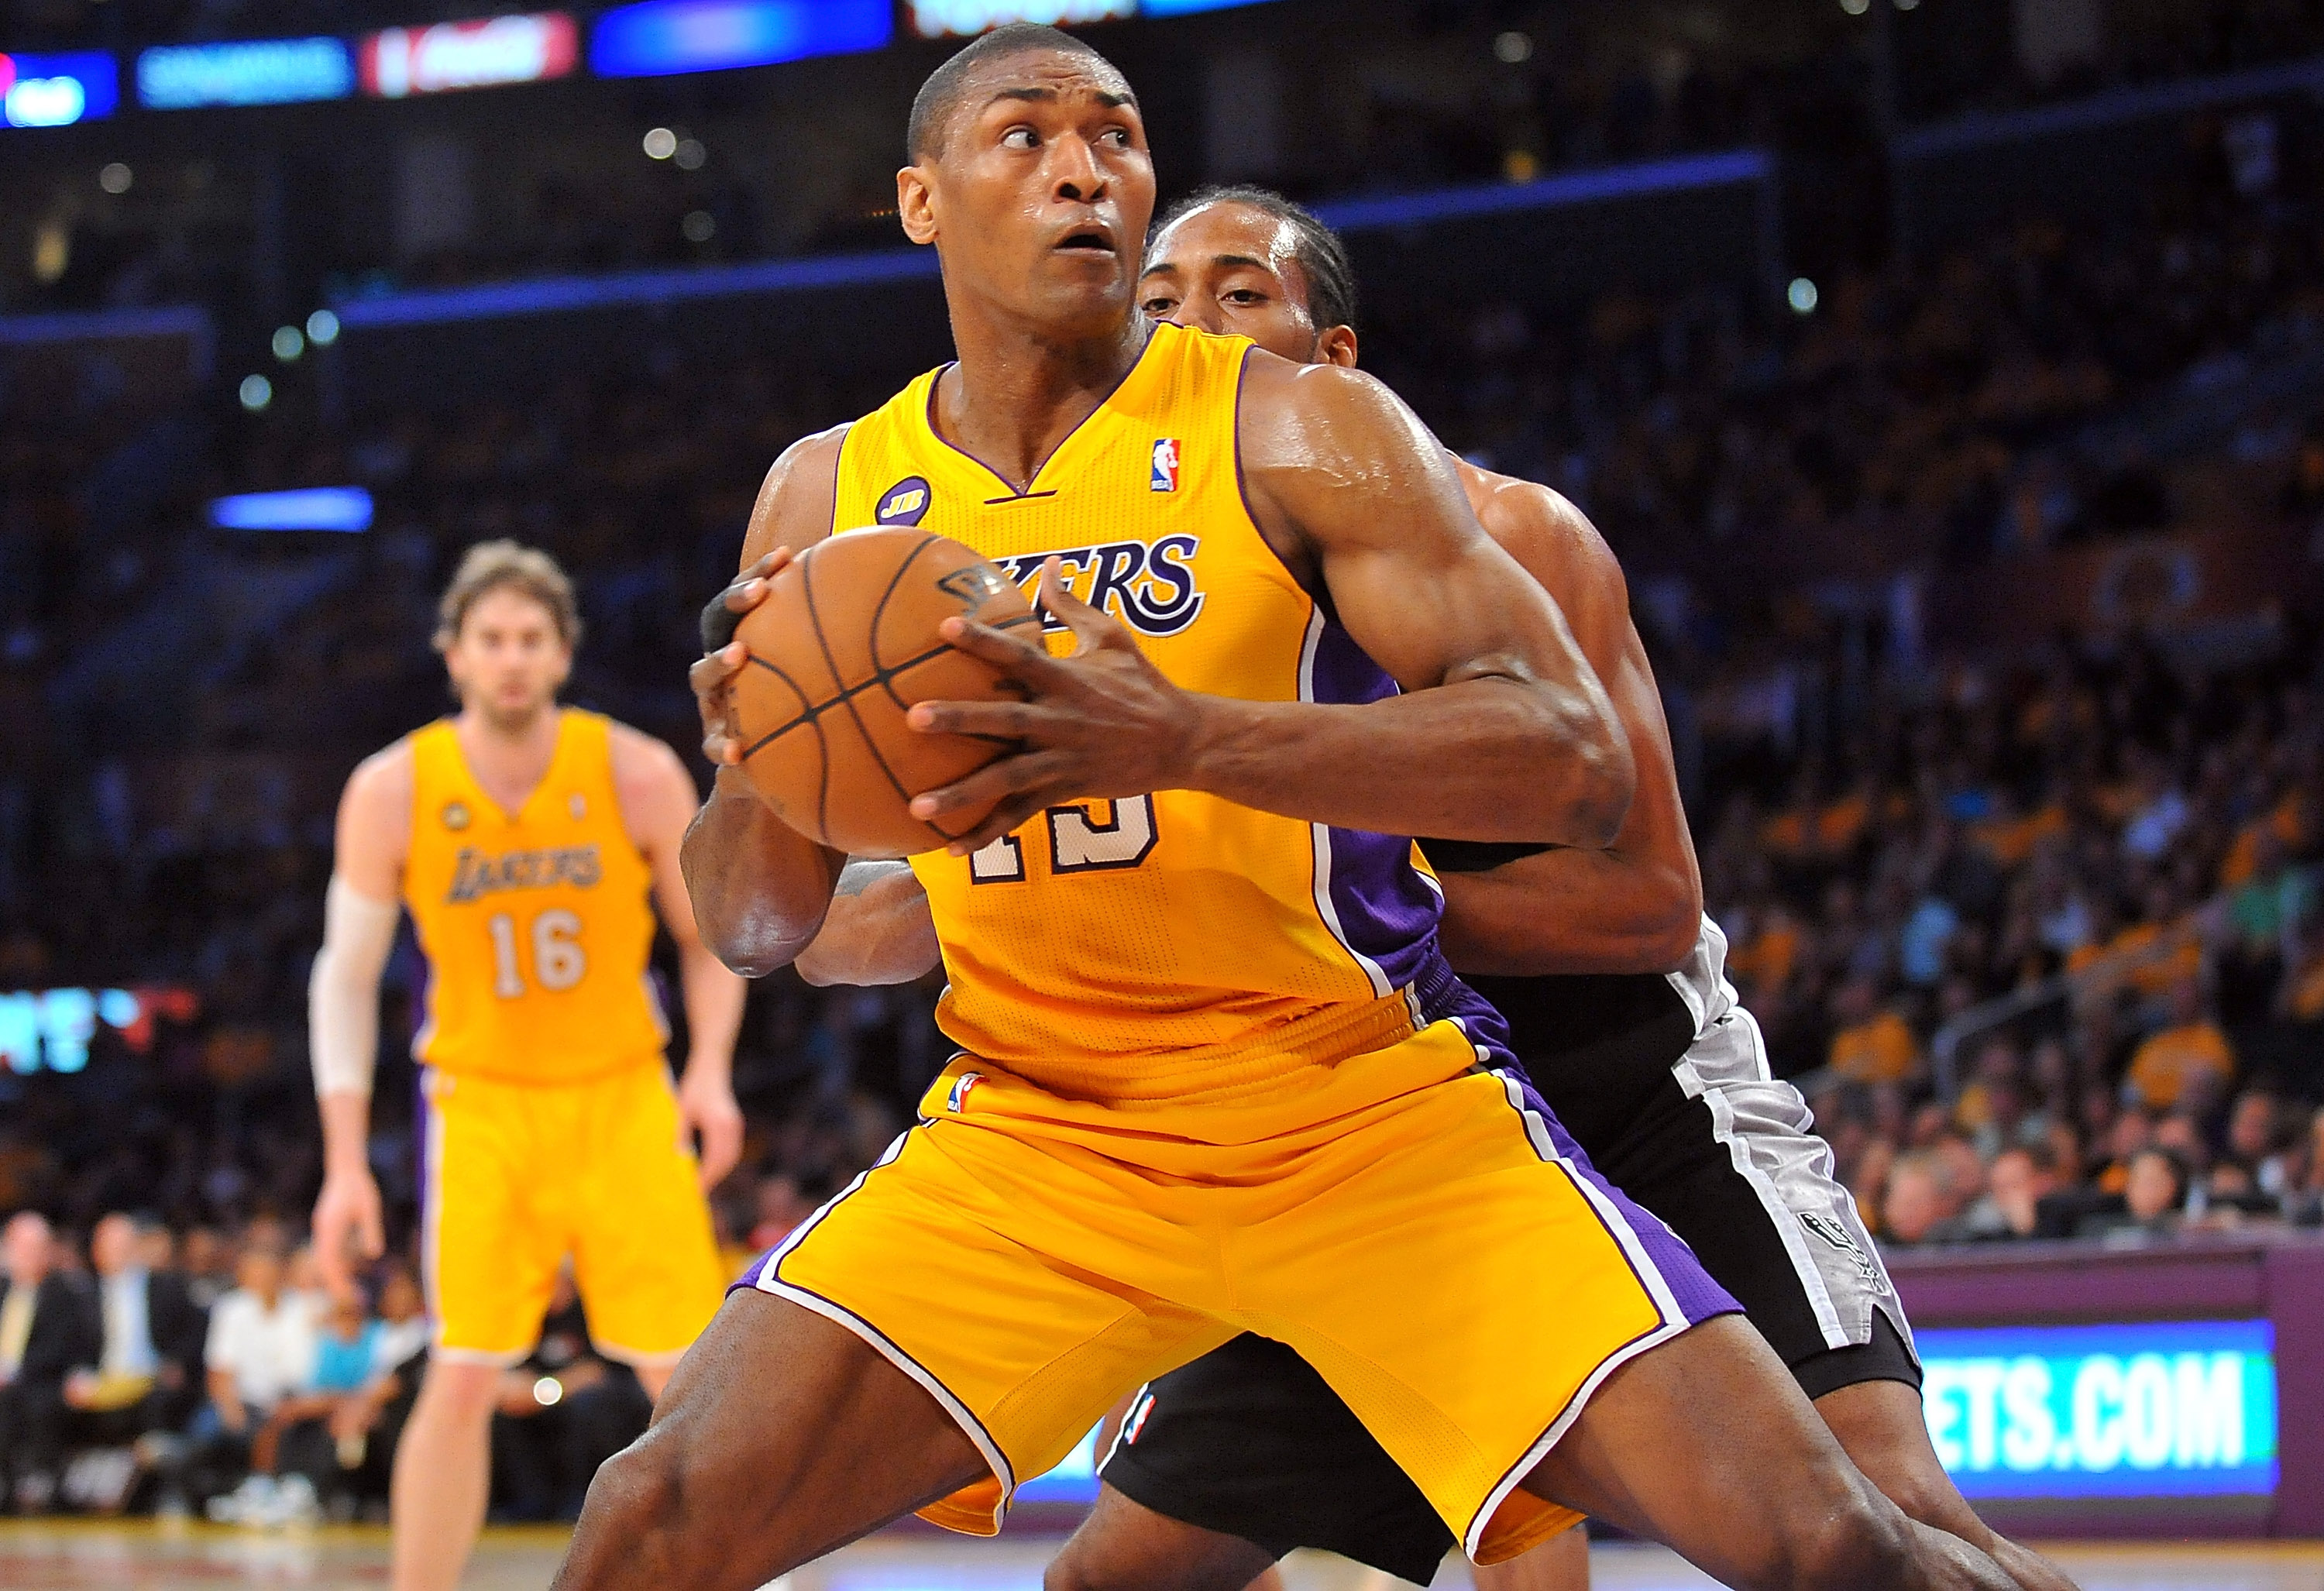 Metta World Peace will make $7.7 million during the 2013-14 season. (USA Today Sports)